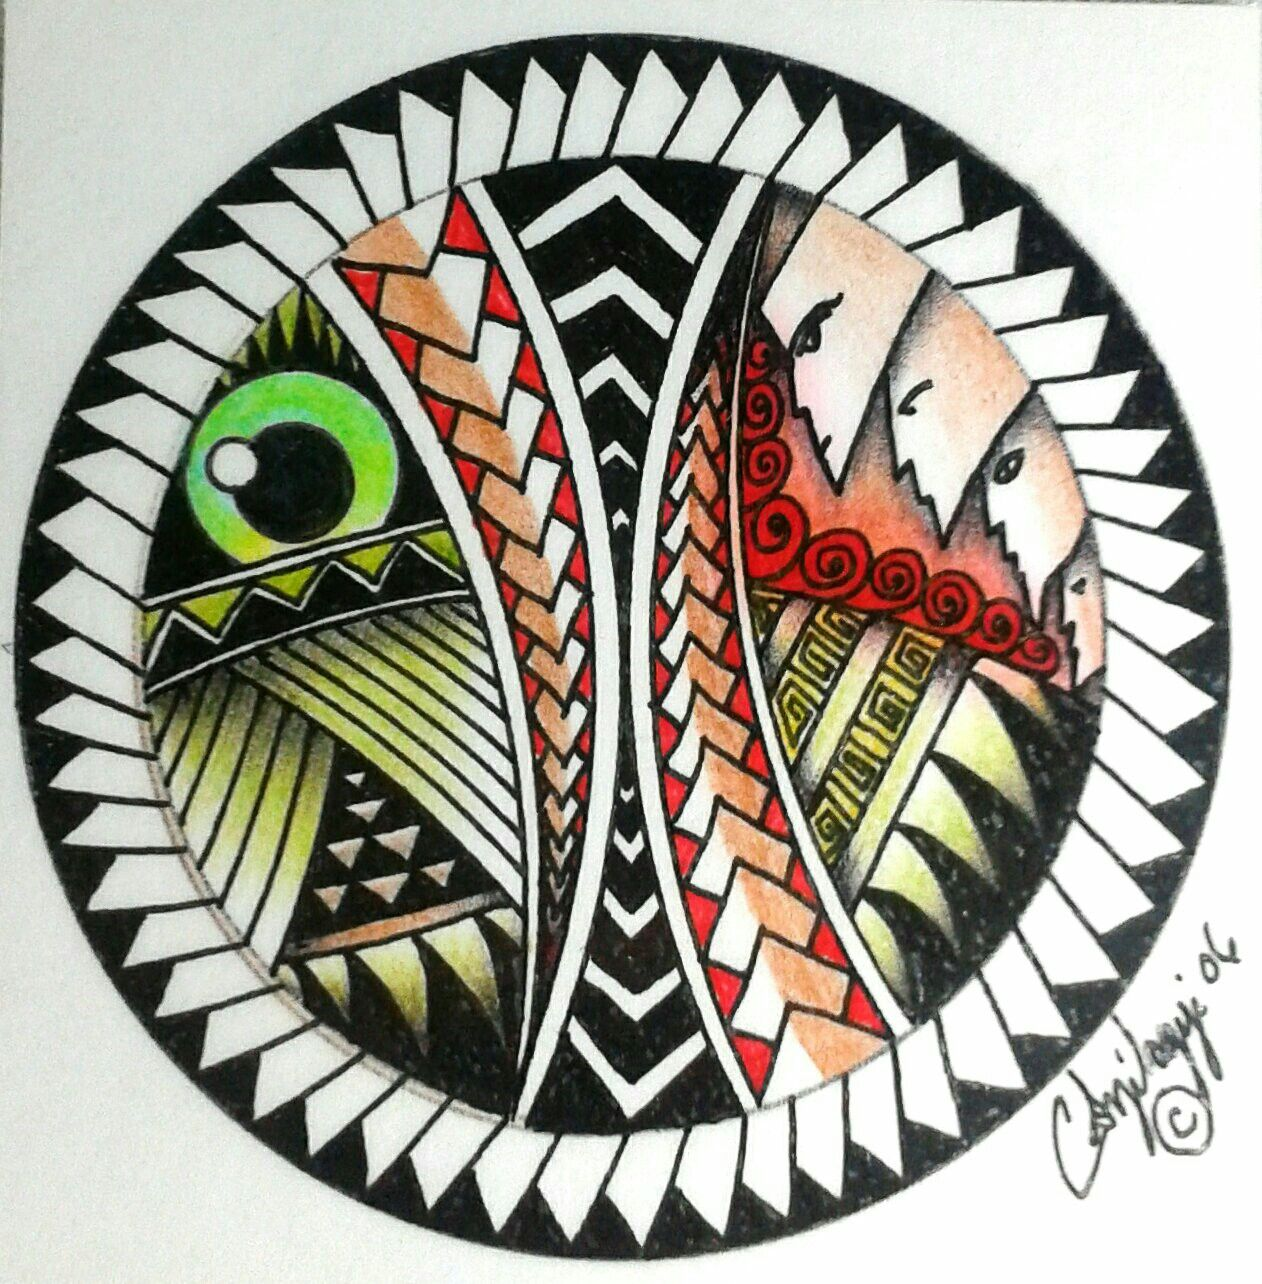 Neo Tribal Tattoo Design Color Pencil And Ink Circle